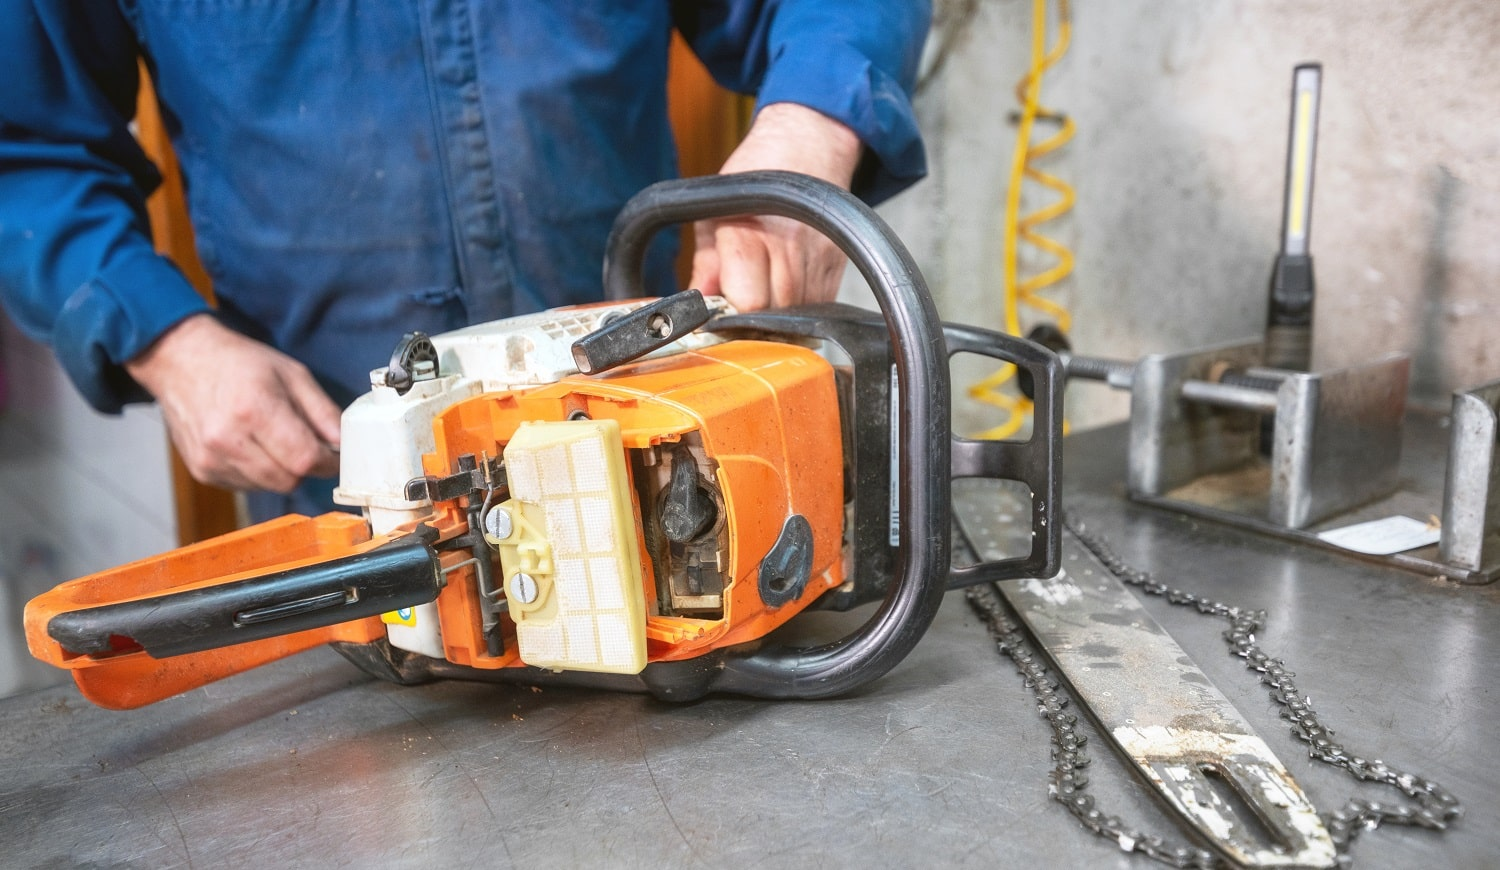 Mechanic repairing a chainsaw. Man repairing a chainsaw in workbench .